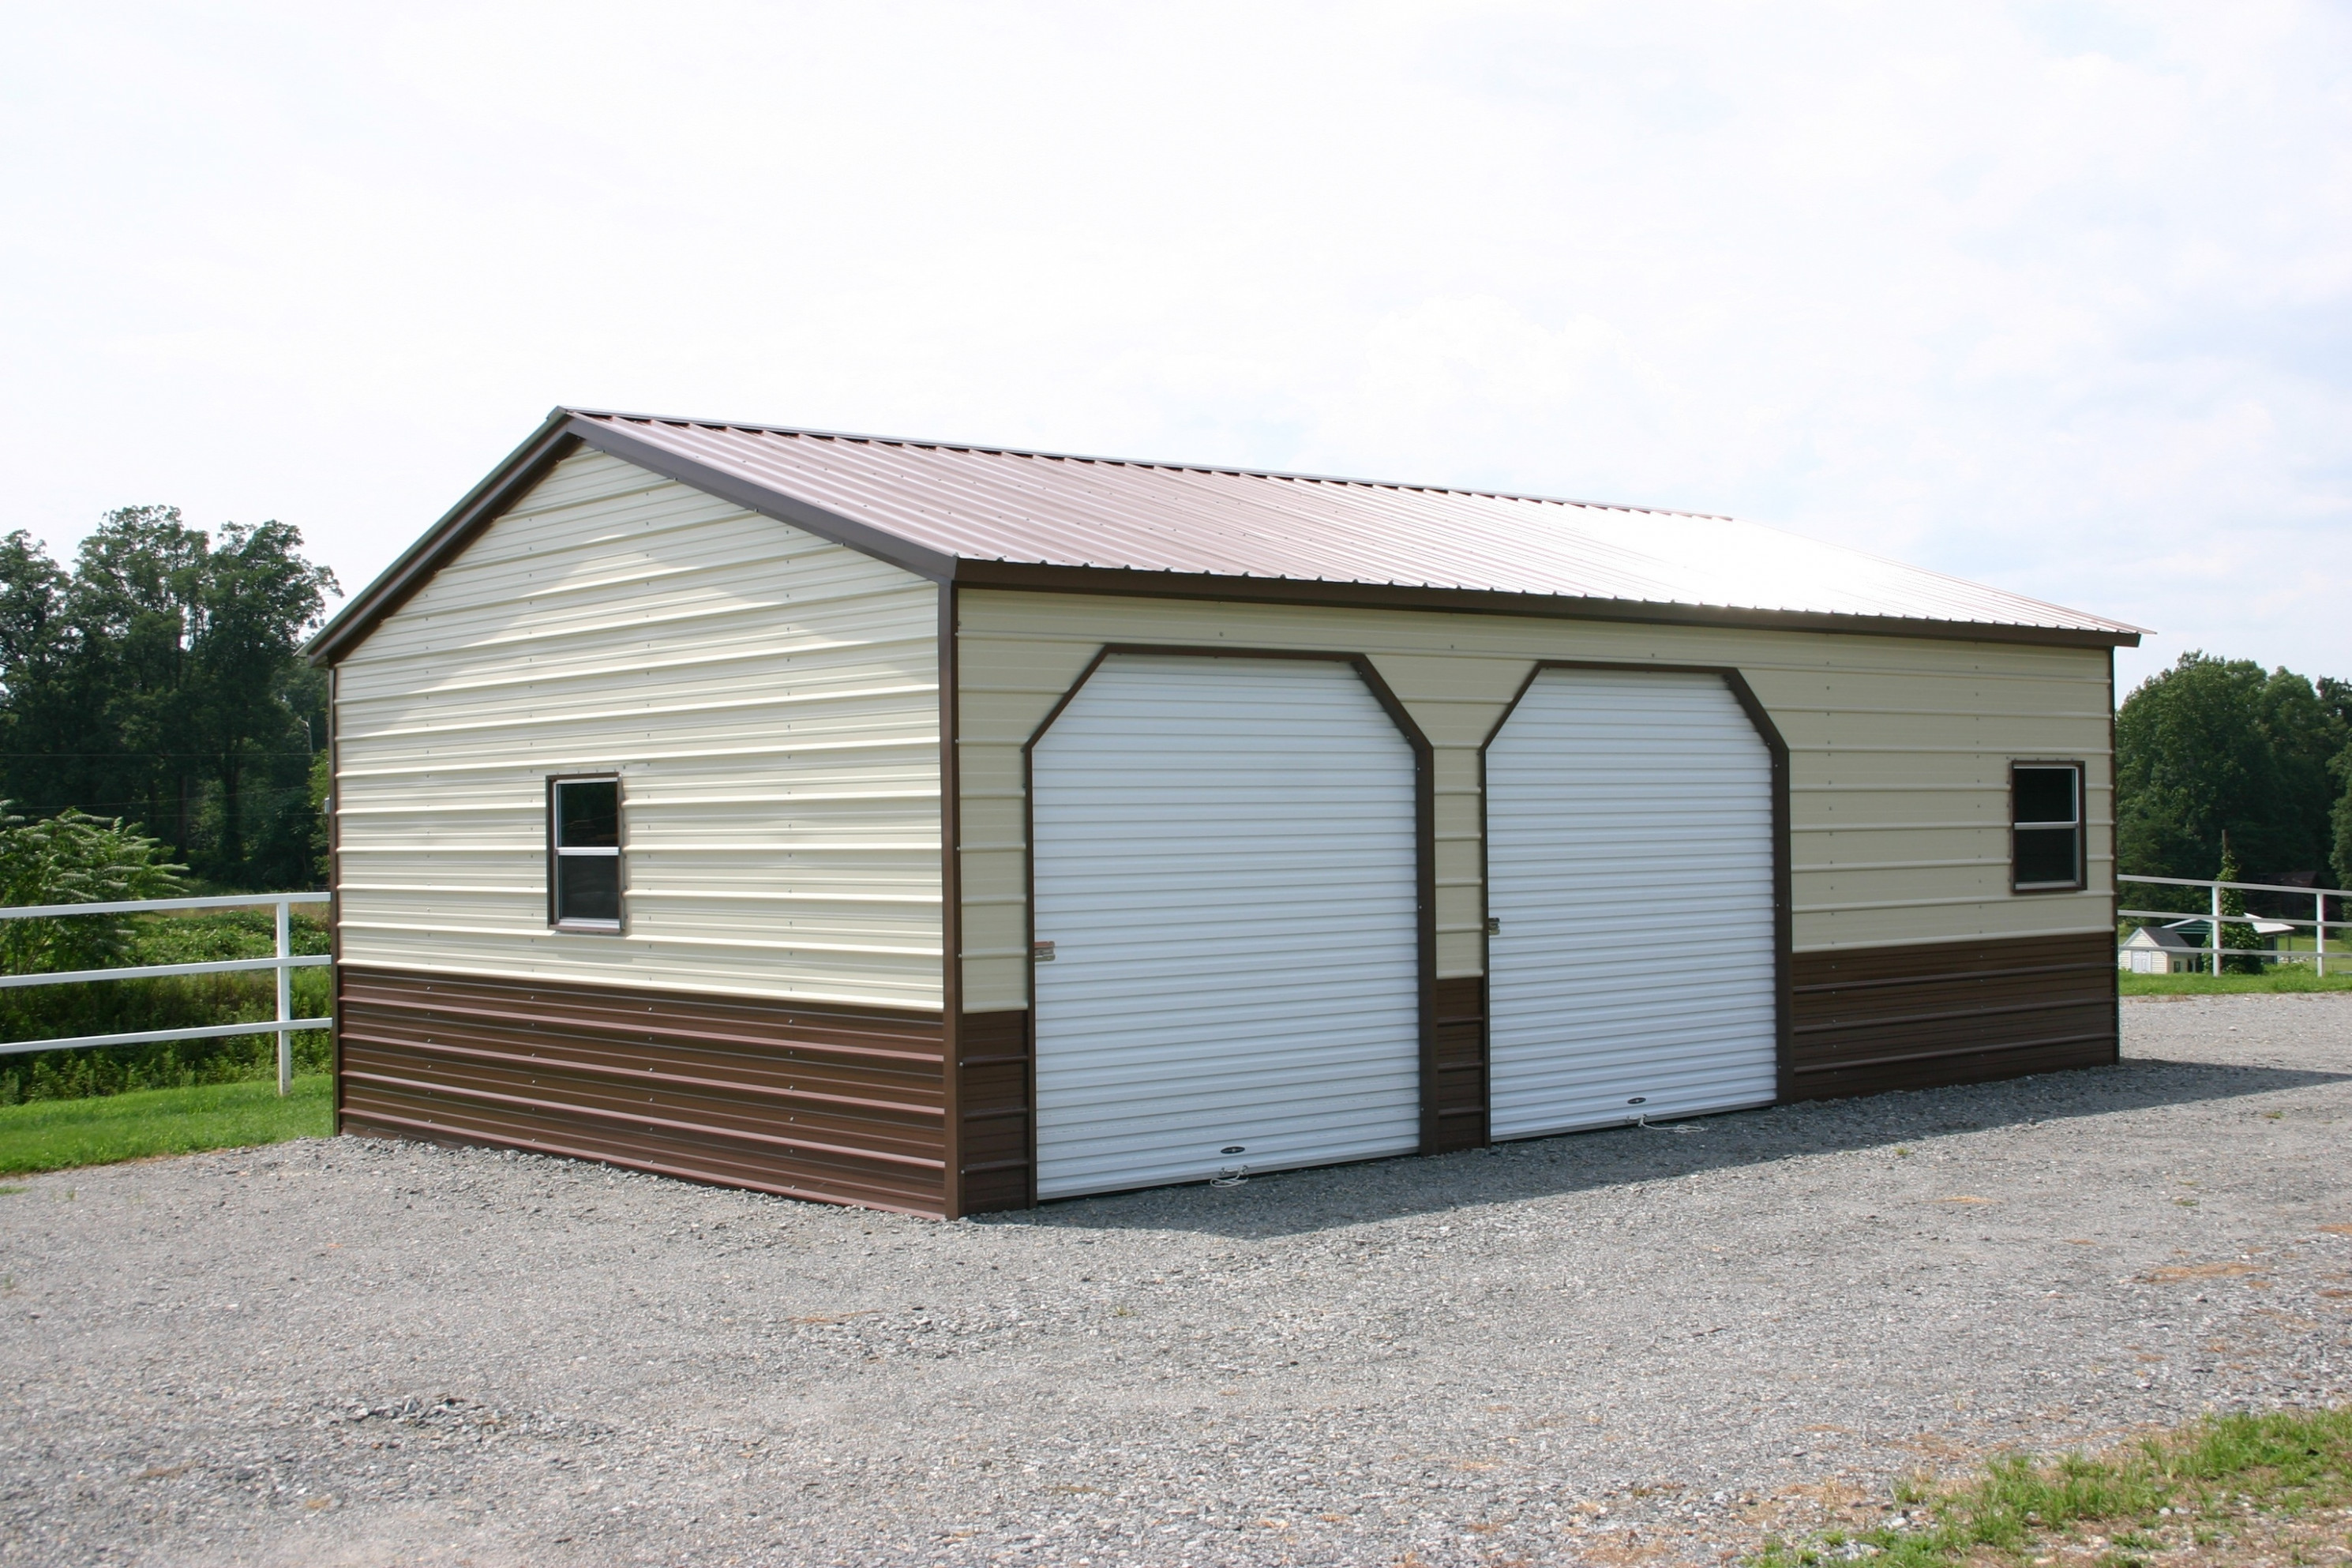 Portable Storage Buildings Sheds Carports Metal Steel Garages with ...